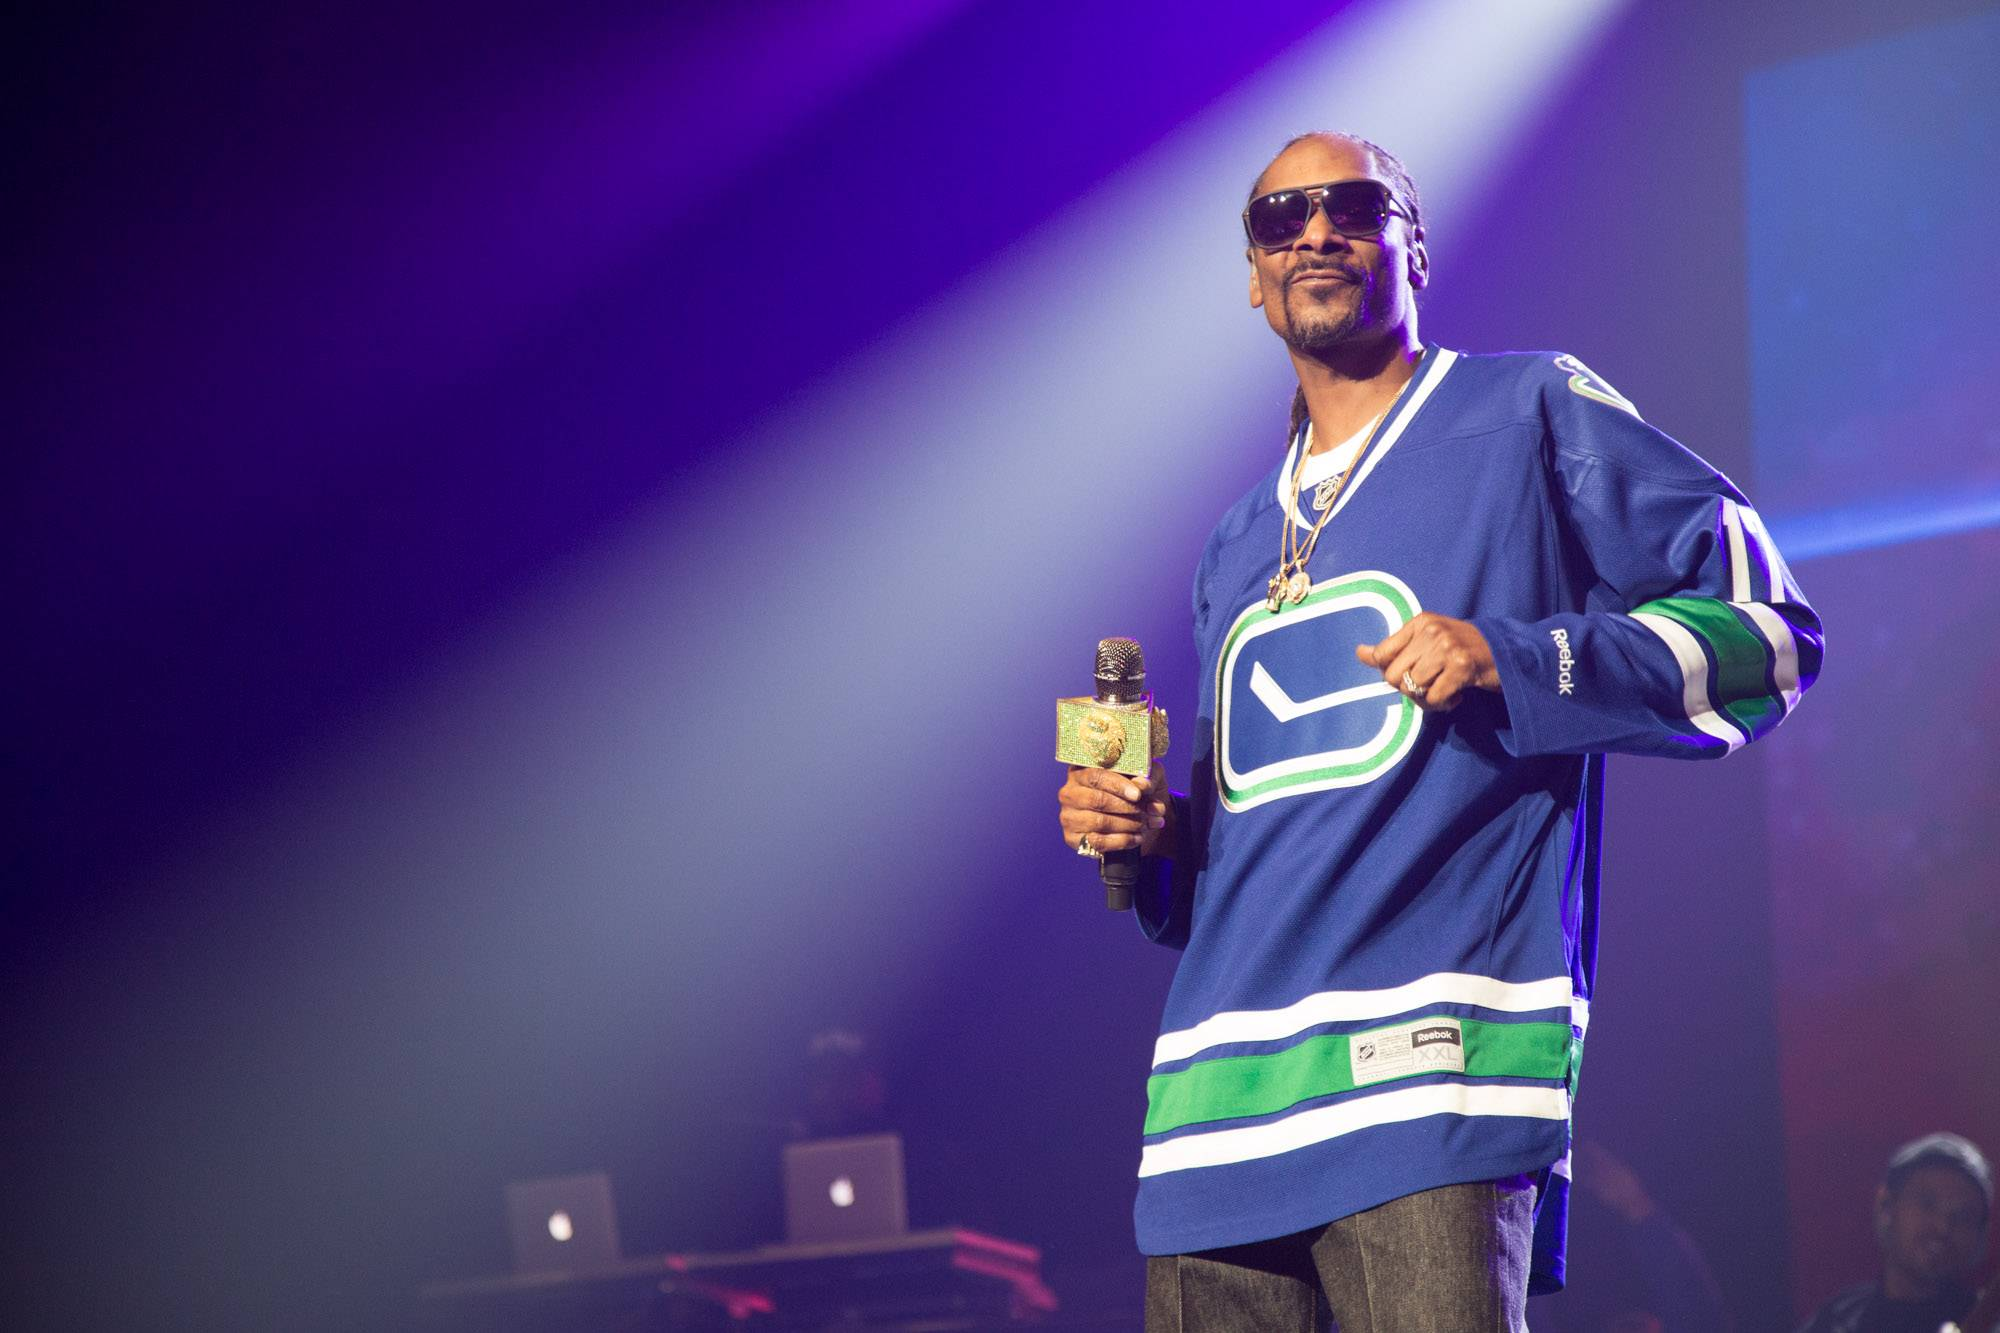 Snoop Dogg at Rogers Arena, Vancouver, Apr. 14 2017. Kirk Chantraine photo.